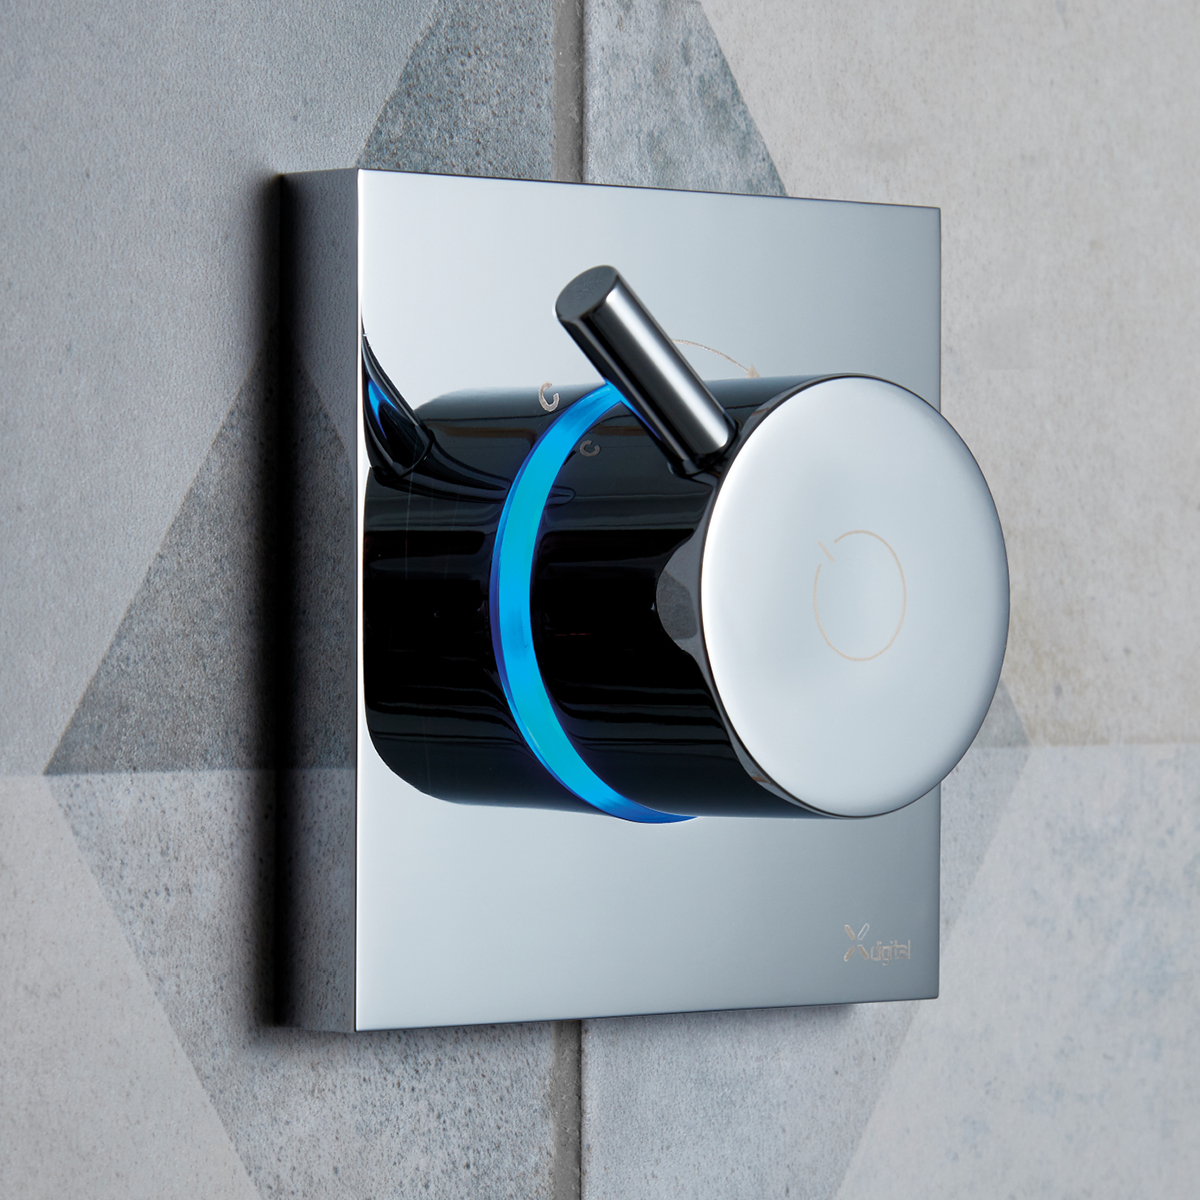 Digital Shower Dial